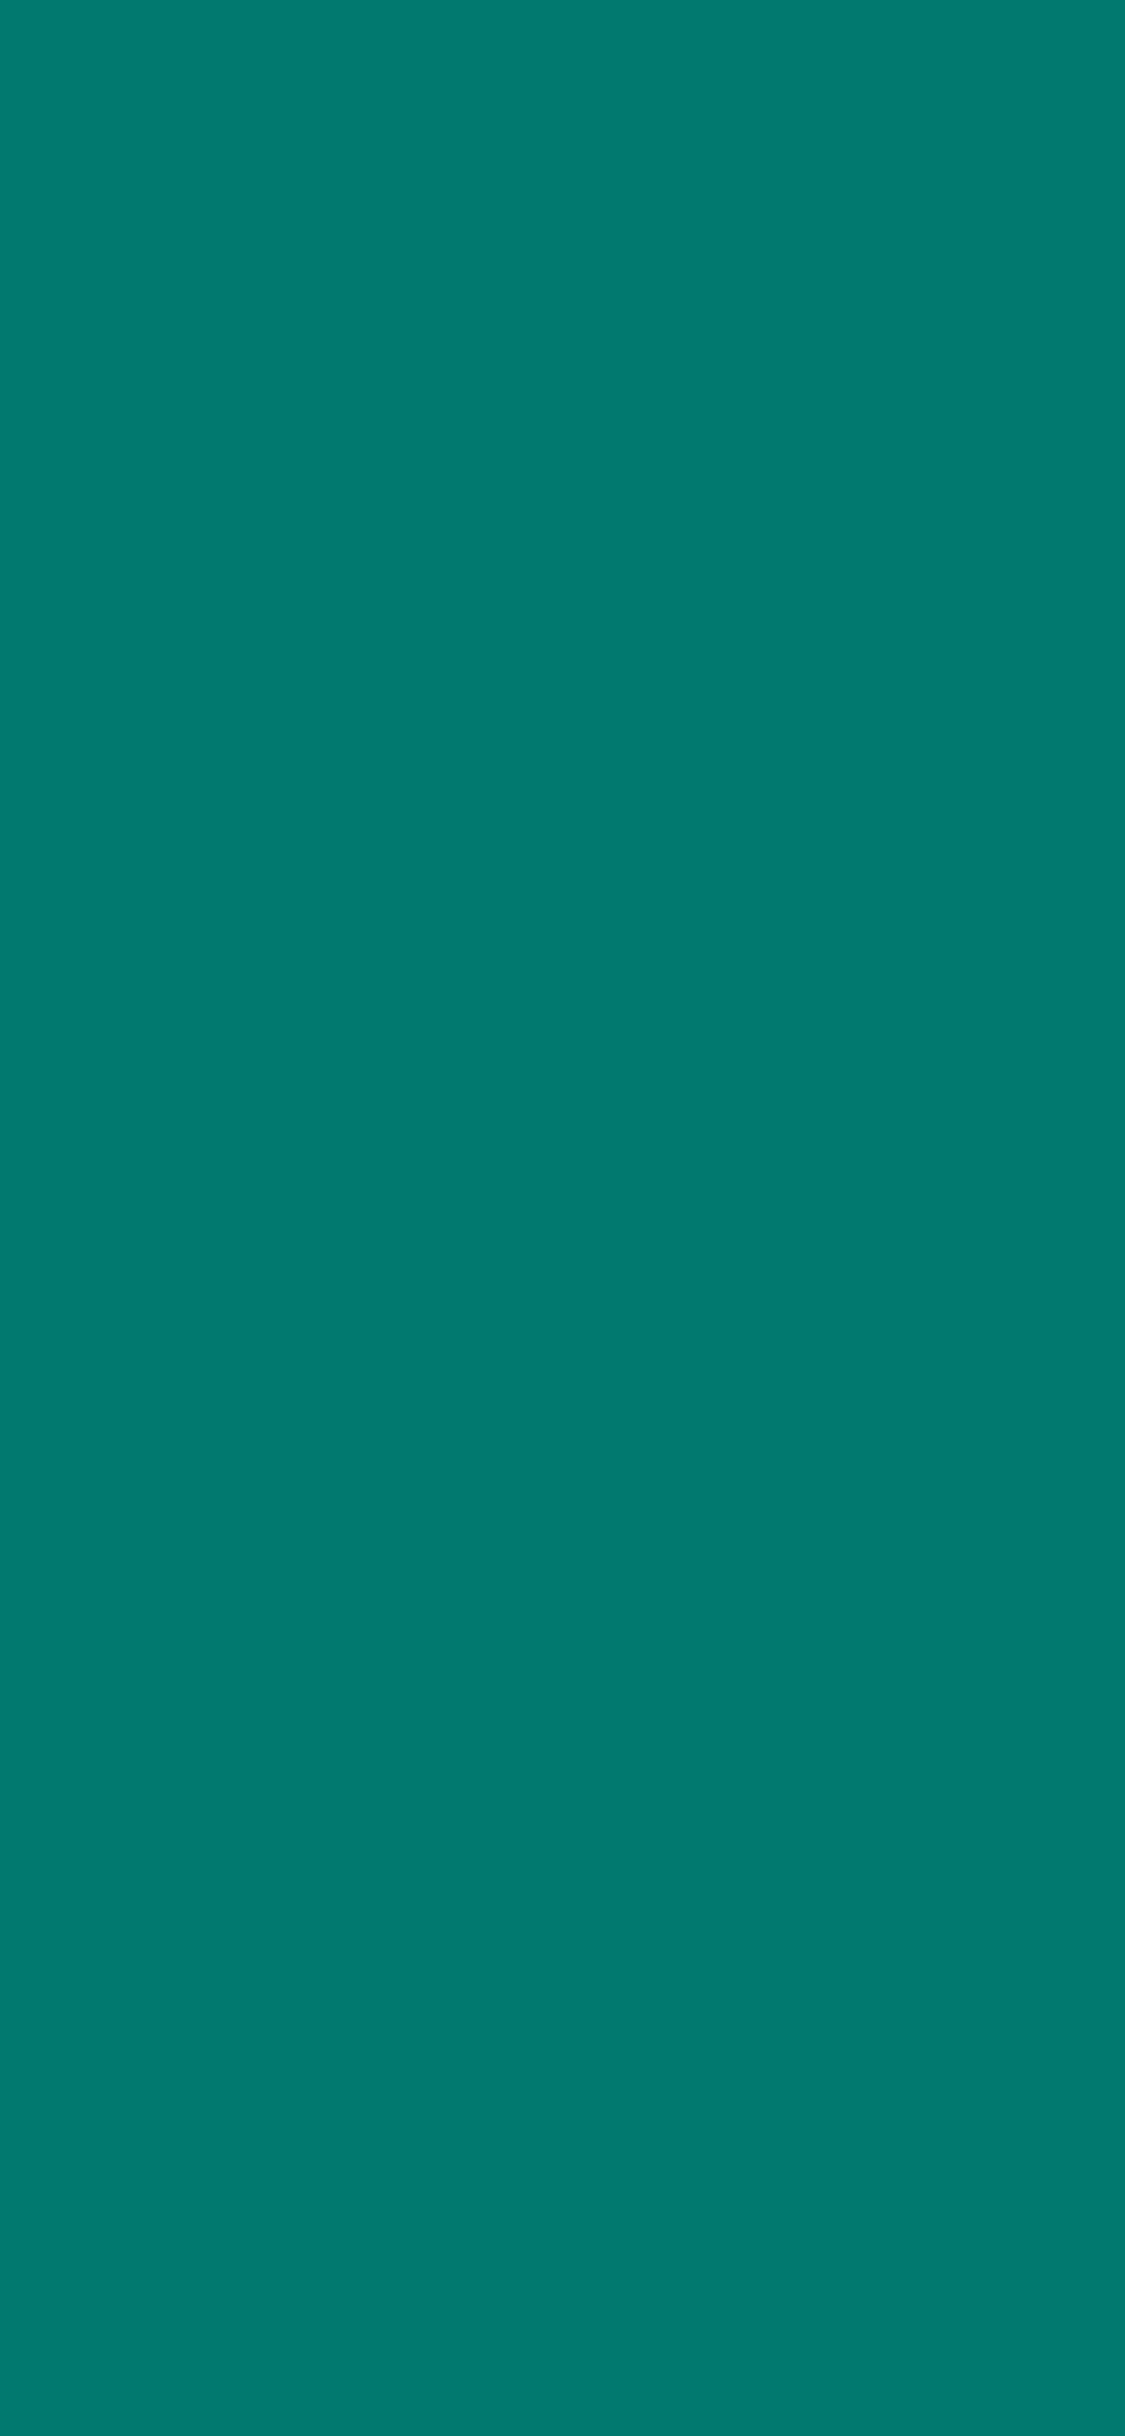 1125x2436 Pine Green Solid Color Background